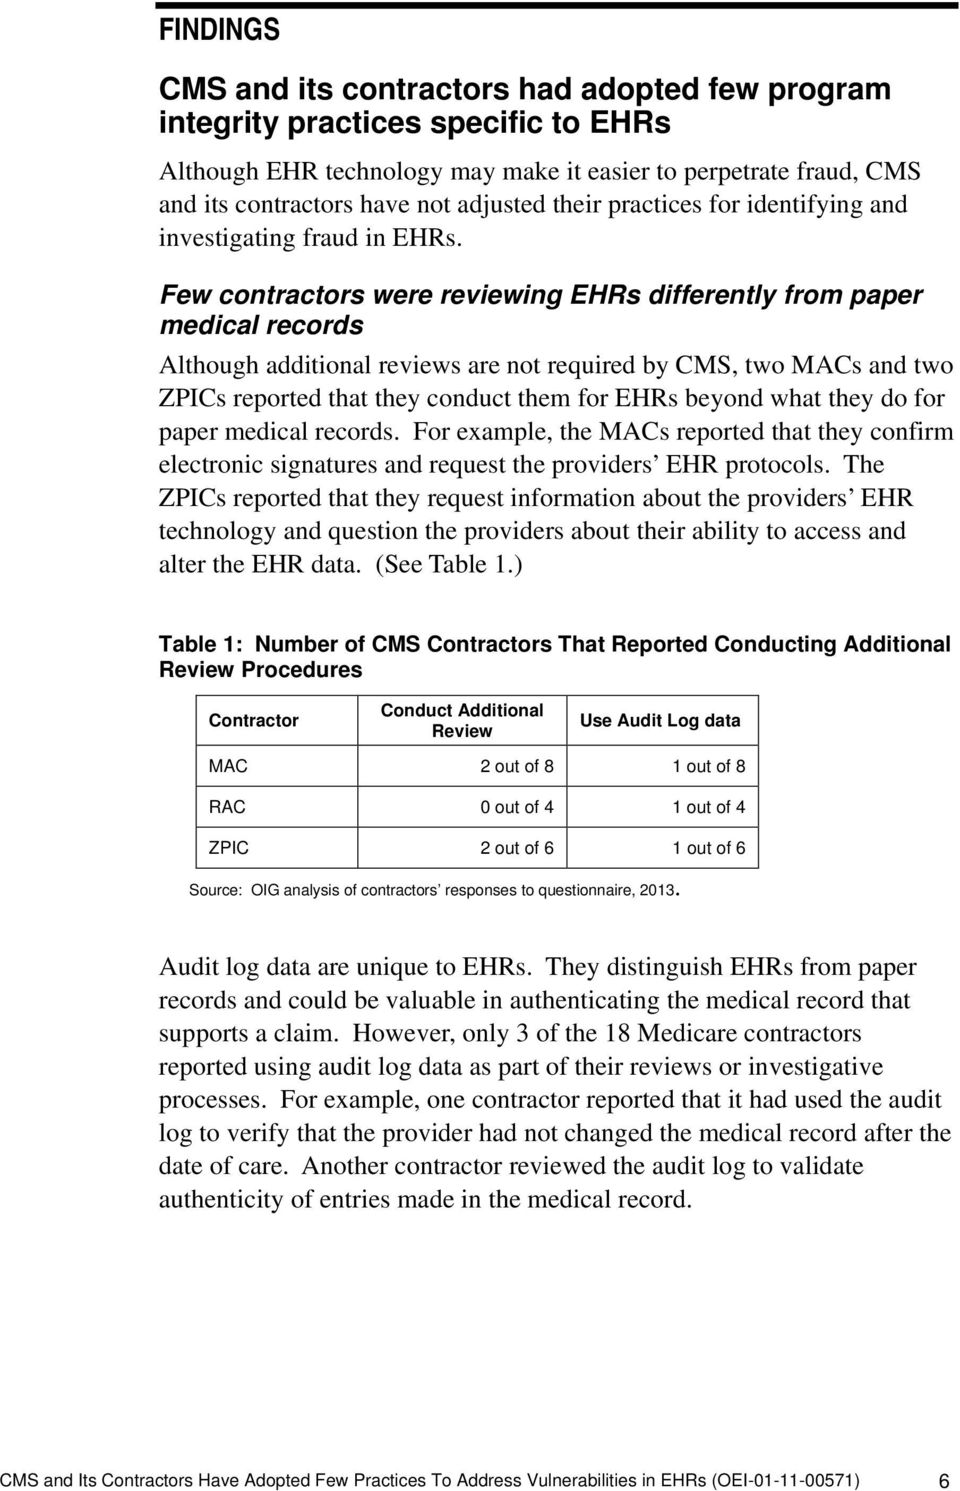 Few contractors were reviewing EHRs differently from paper medical records Although additional reviews are not required by CMS, two MACs and two ZPICs reported that they conduct them for EHRs beyond